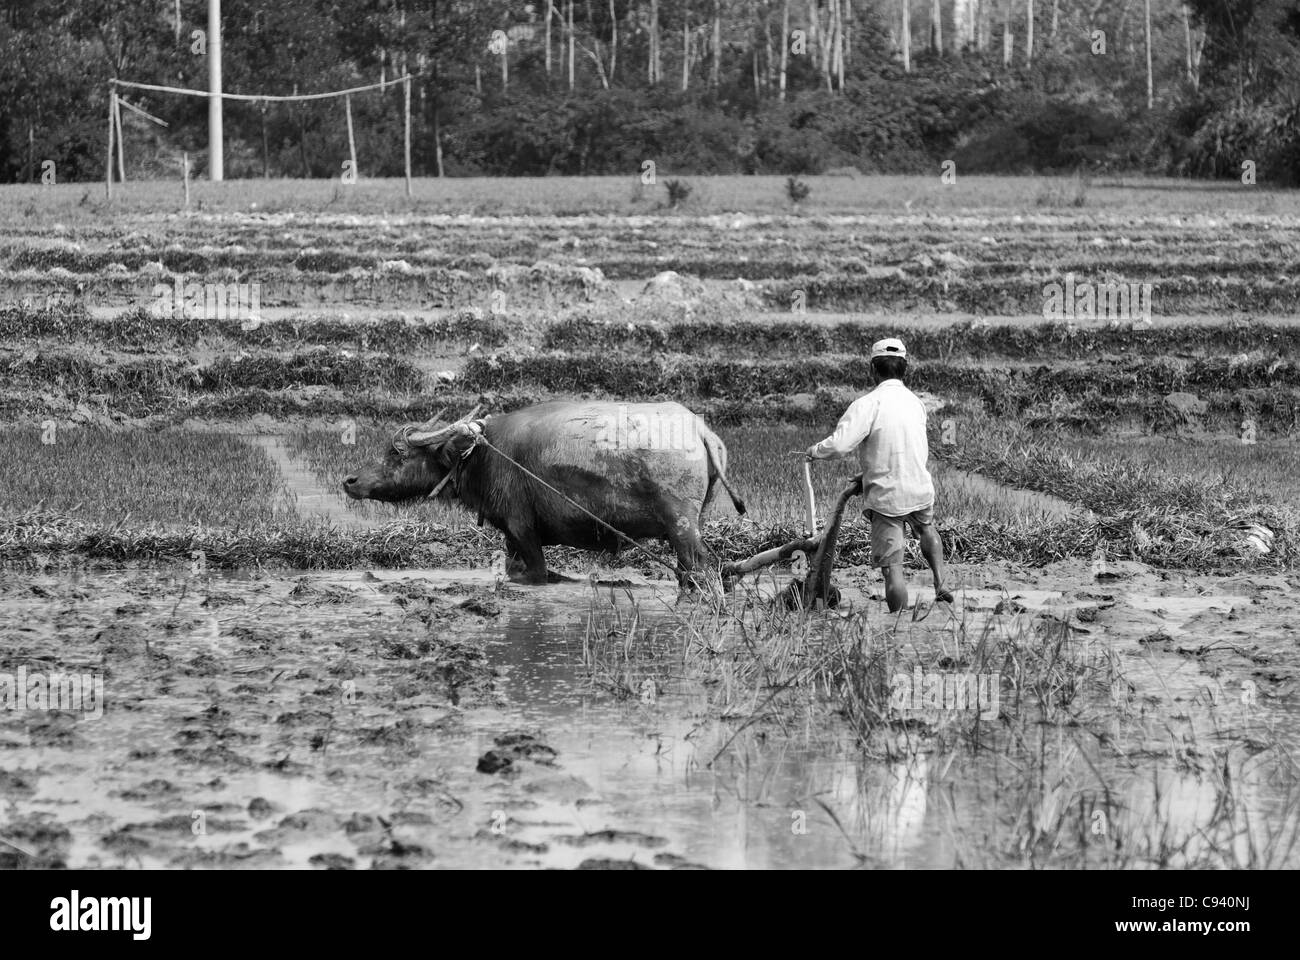 Asia, Vietnam, Hue. Vietnamese farmer working in the field. - Stock Image